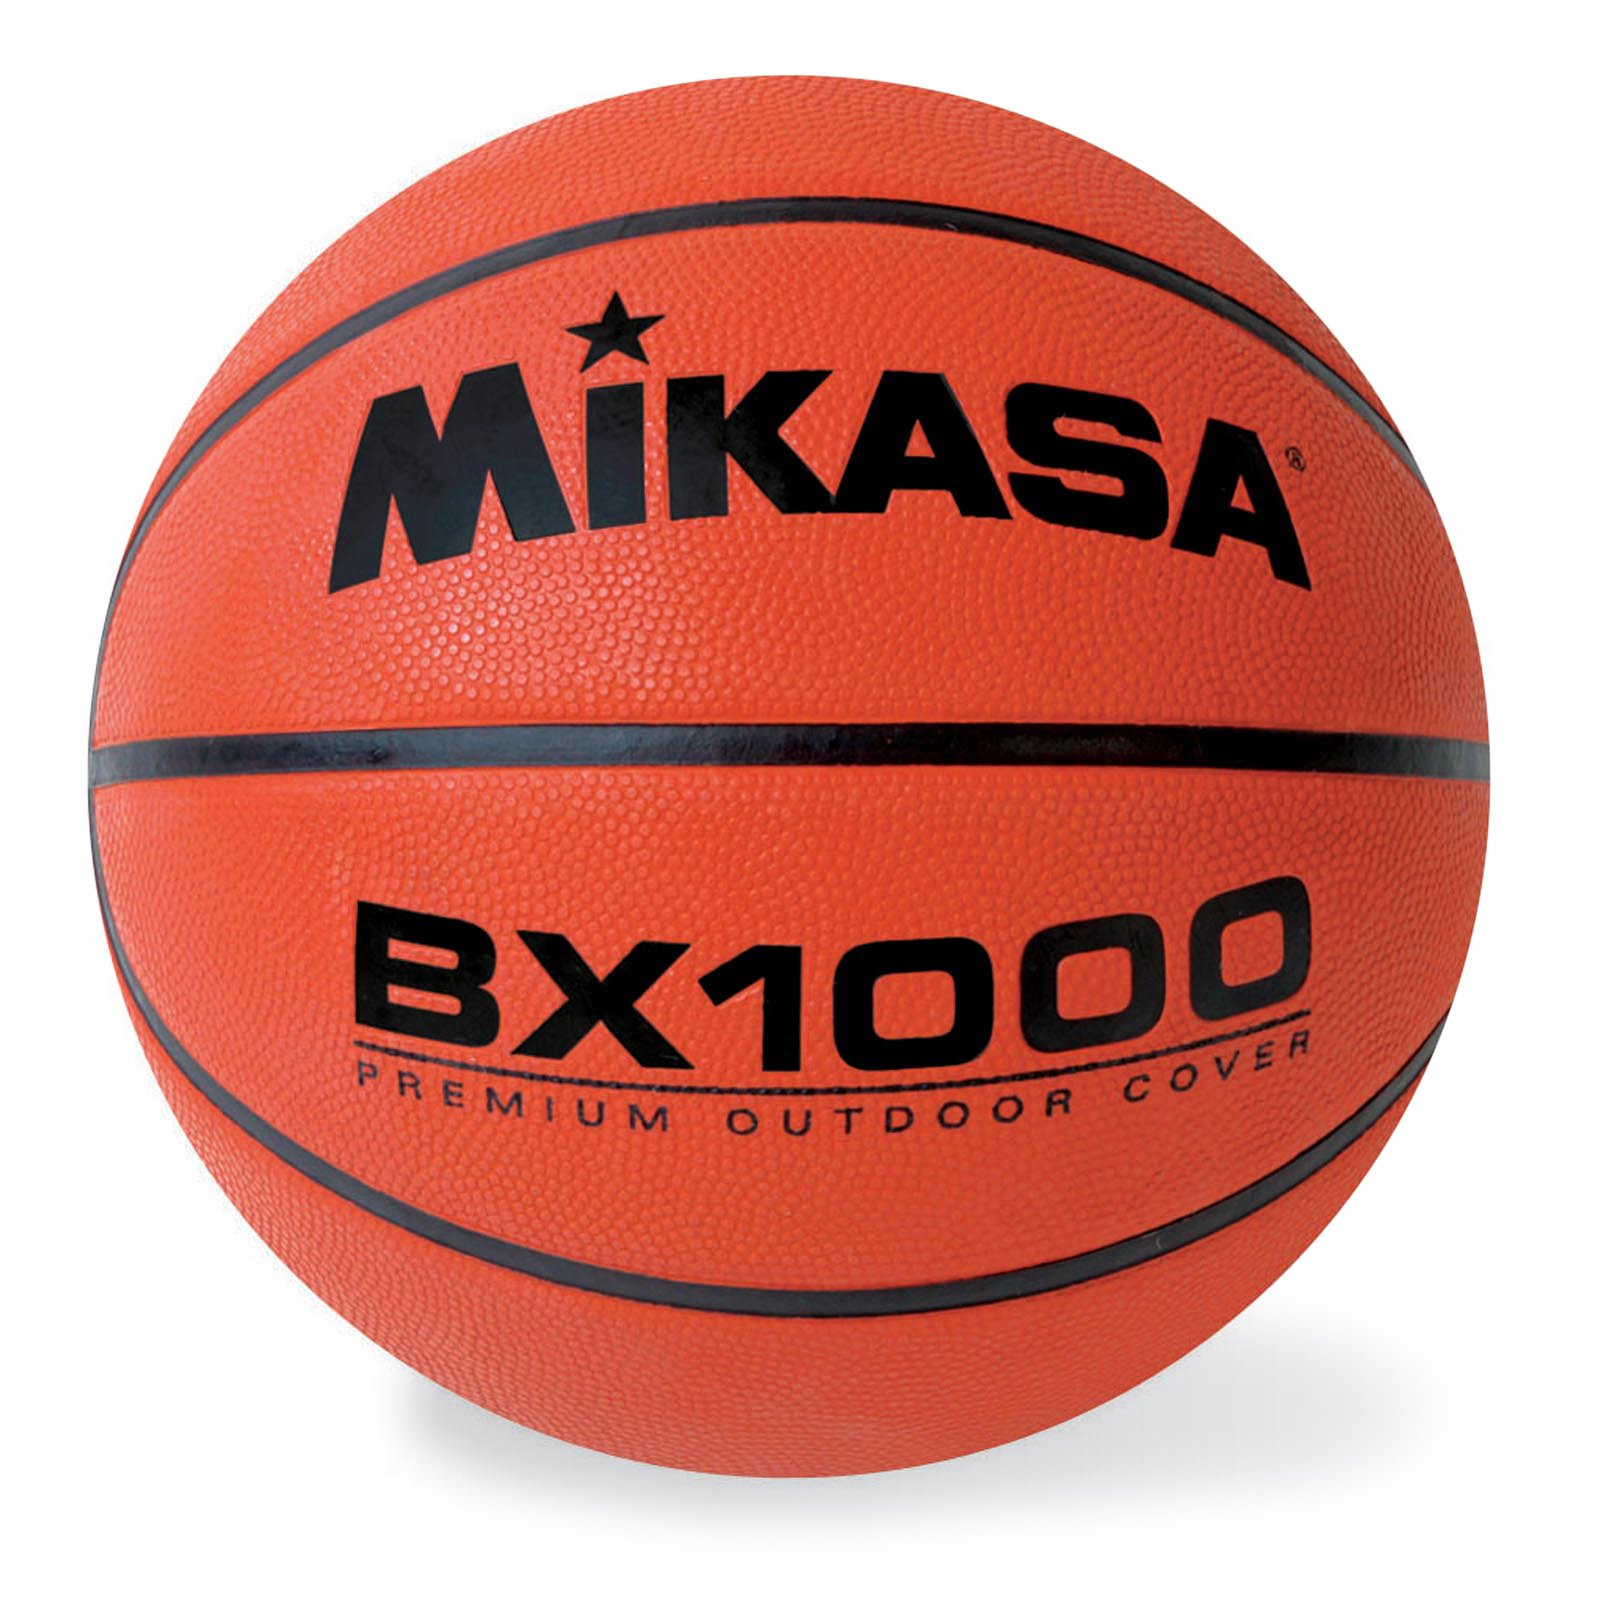 Mikasa Rubber Basketball, Official, 29.5